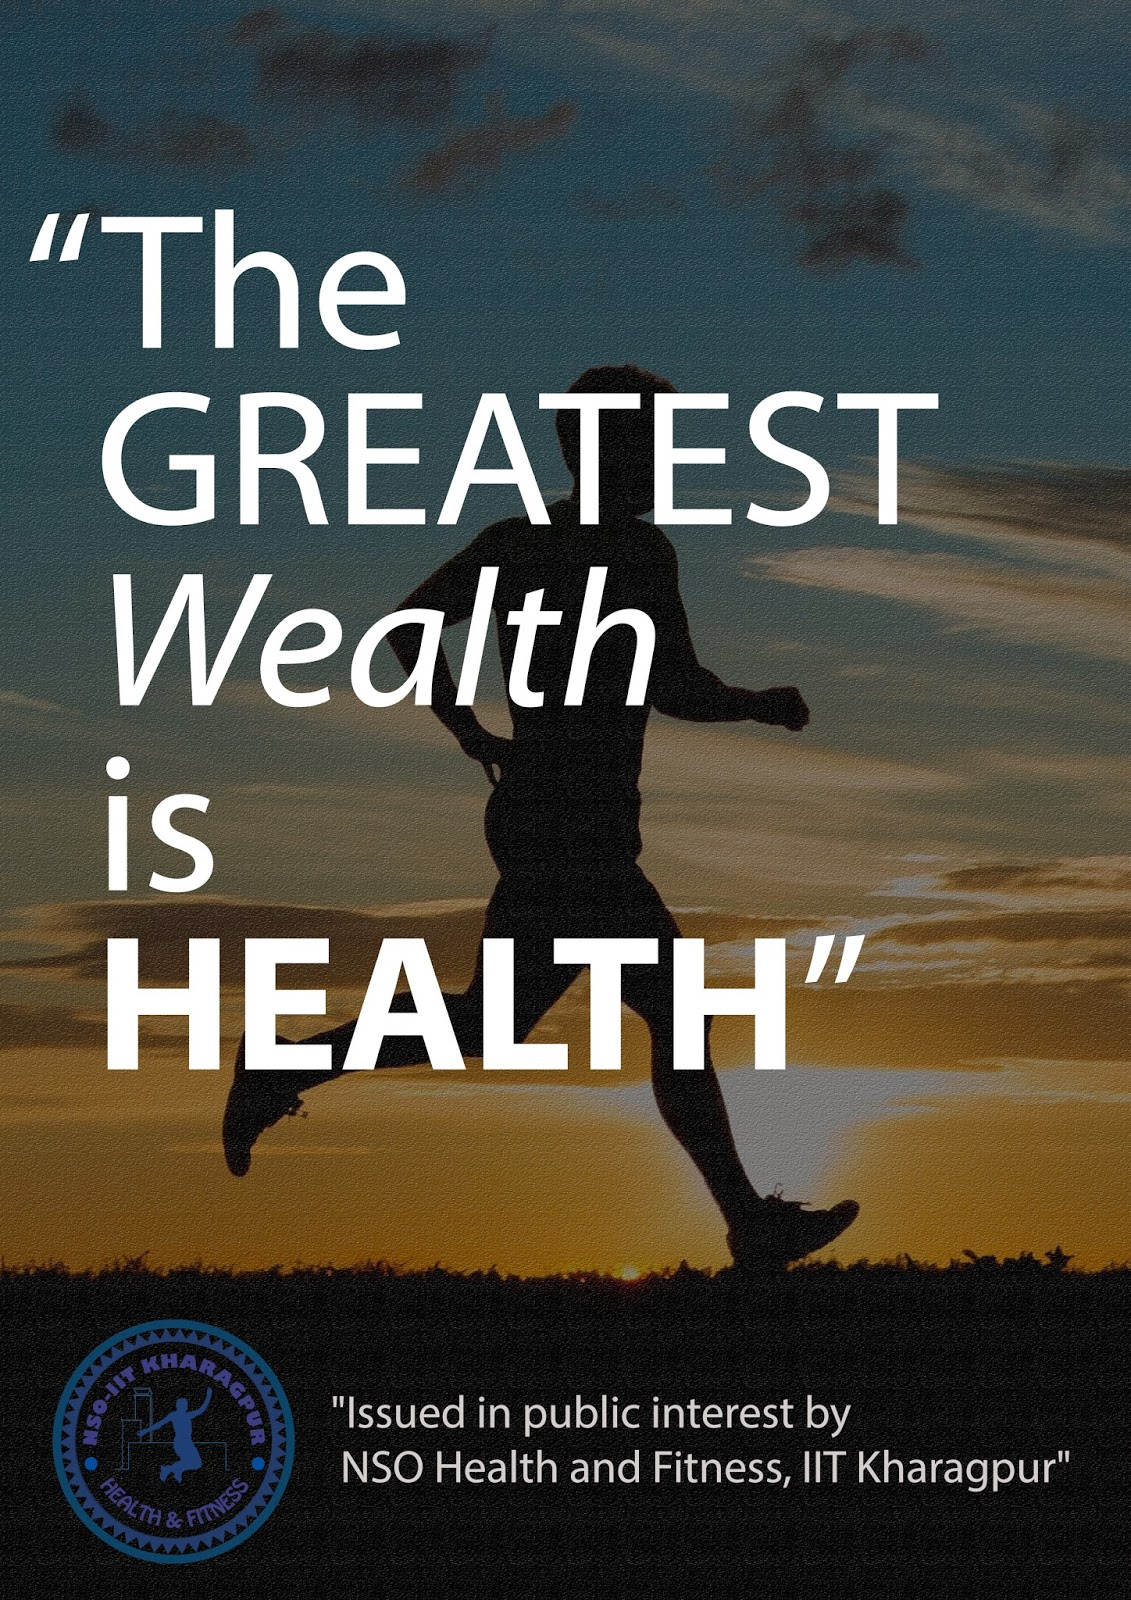 health and fitness posters health and fitness